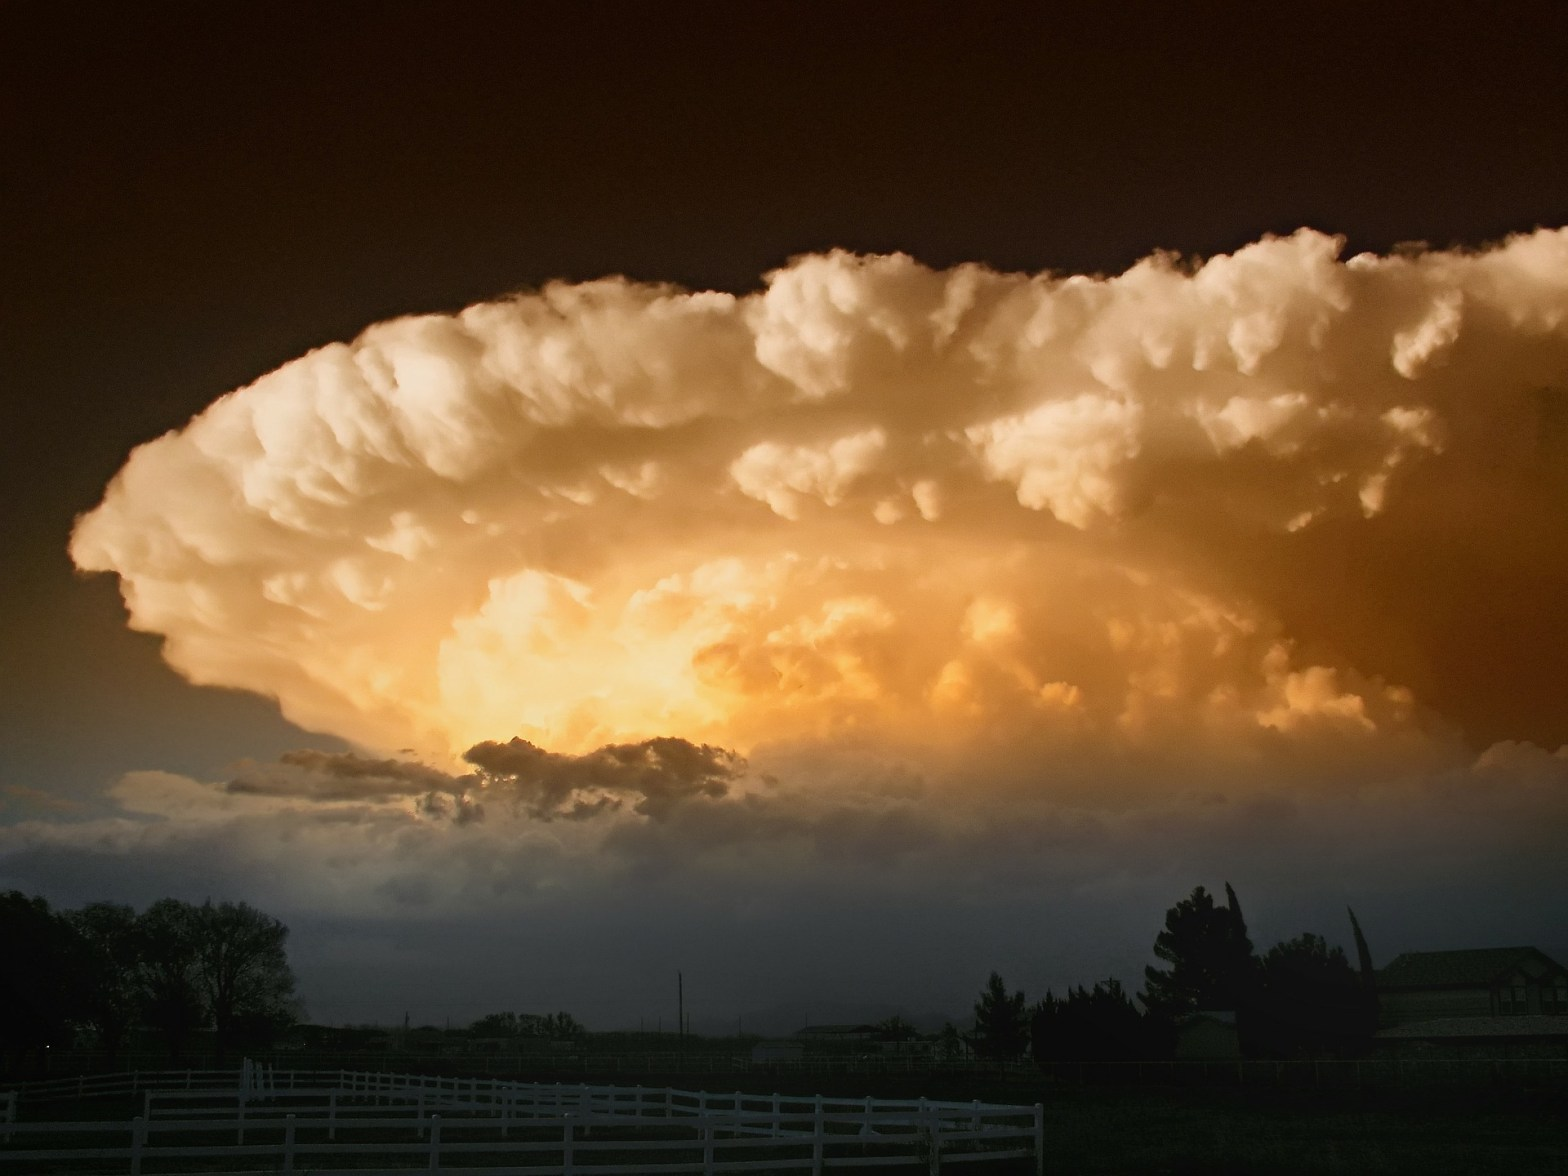 A supercell thunderstorm